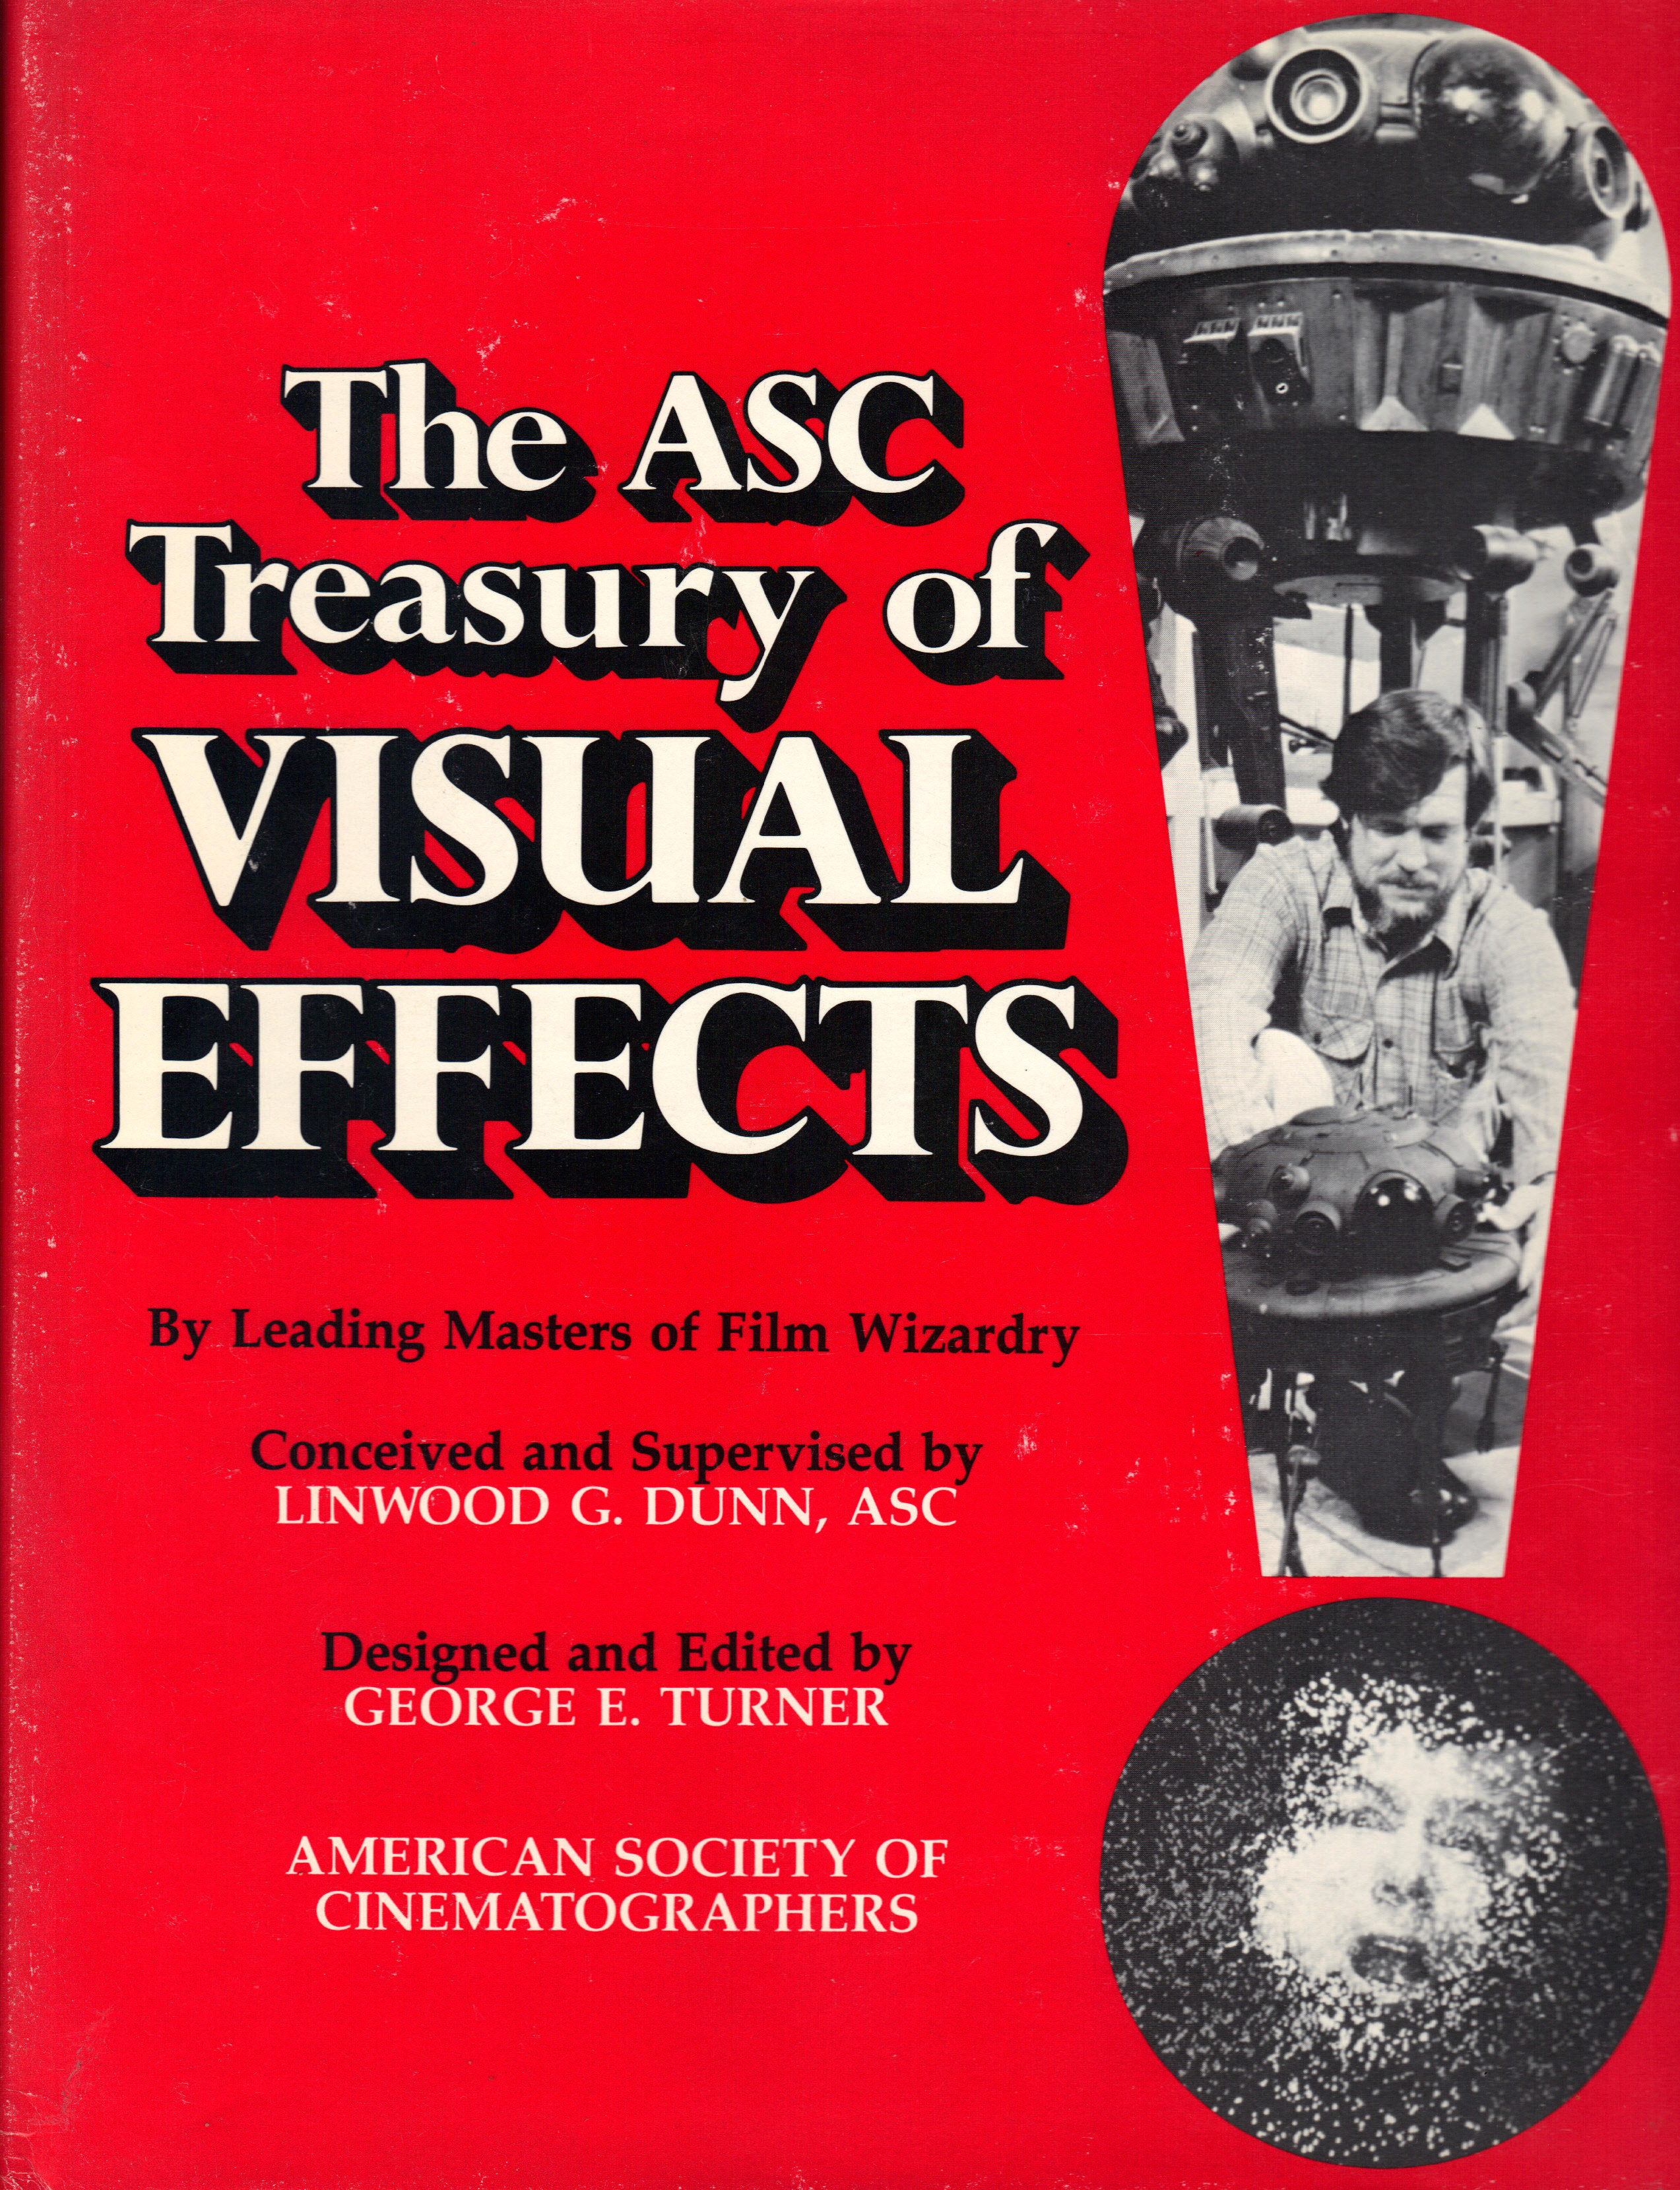 Image for THE ASC TREASURY OF VISUAL EFFECTS By Leading Masters of Film Wizardry